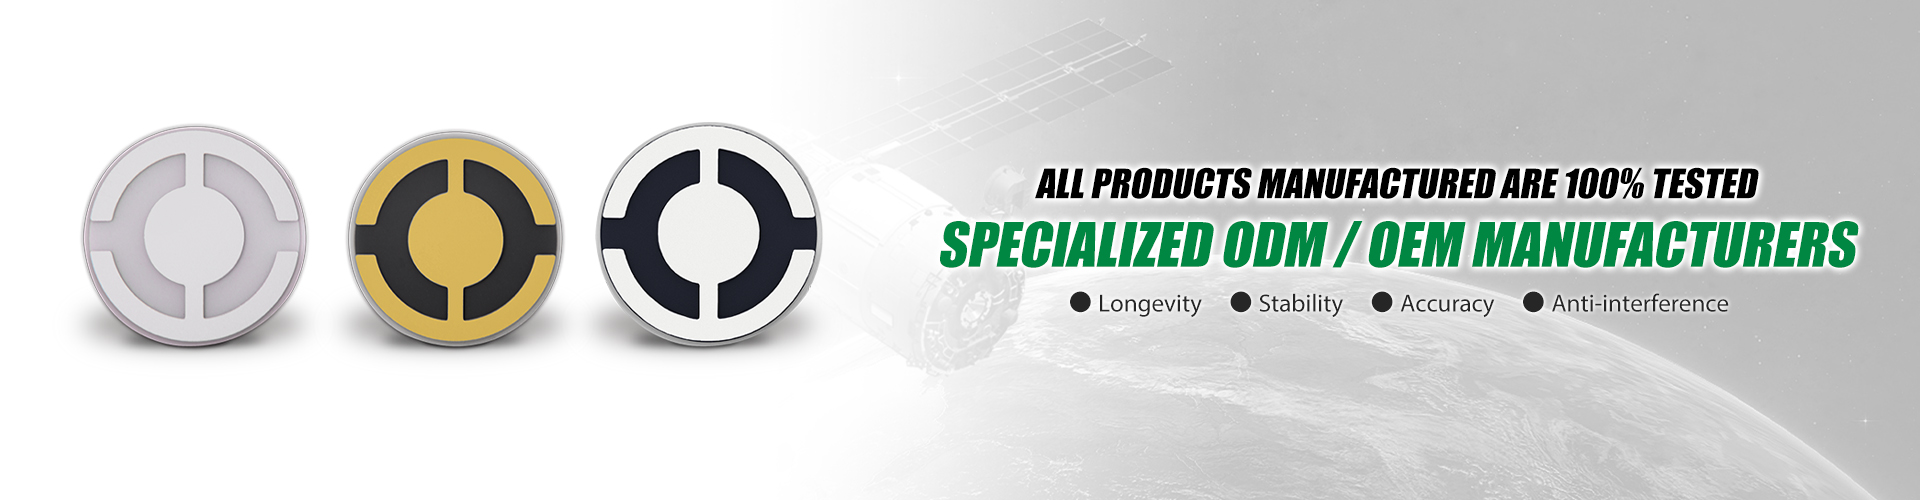 Specialized ODM OEM Manufacturers Banner 1029